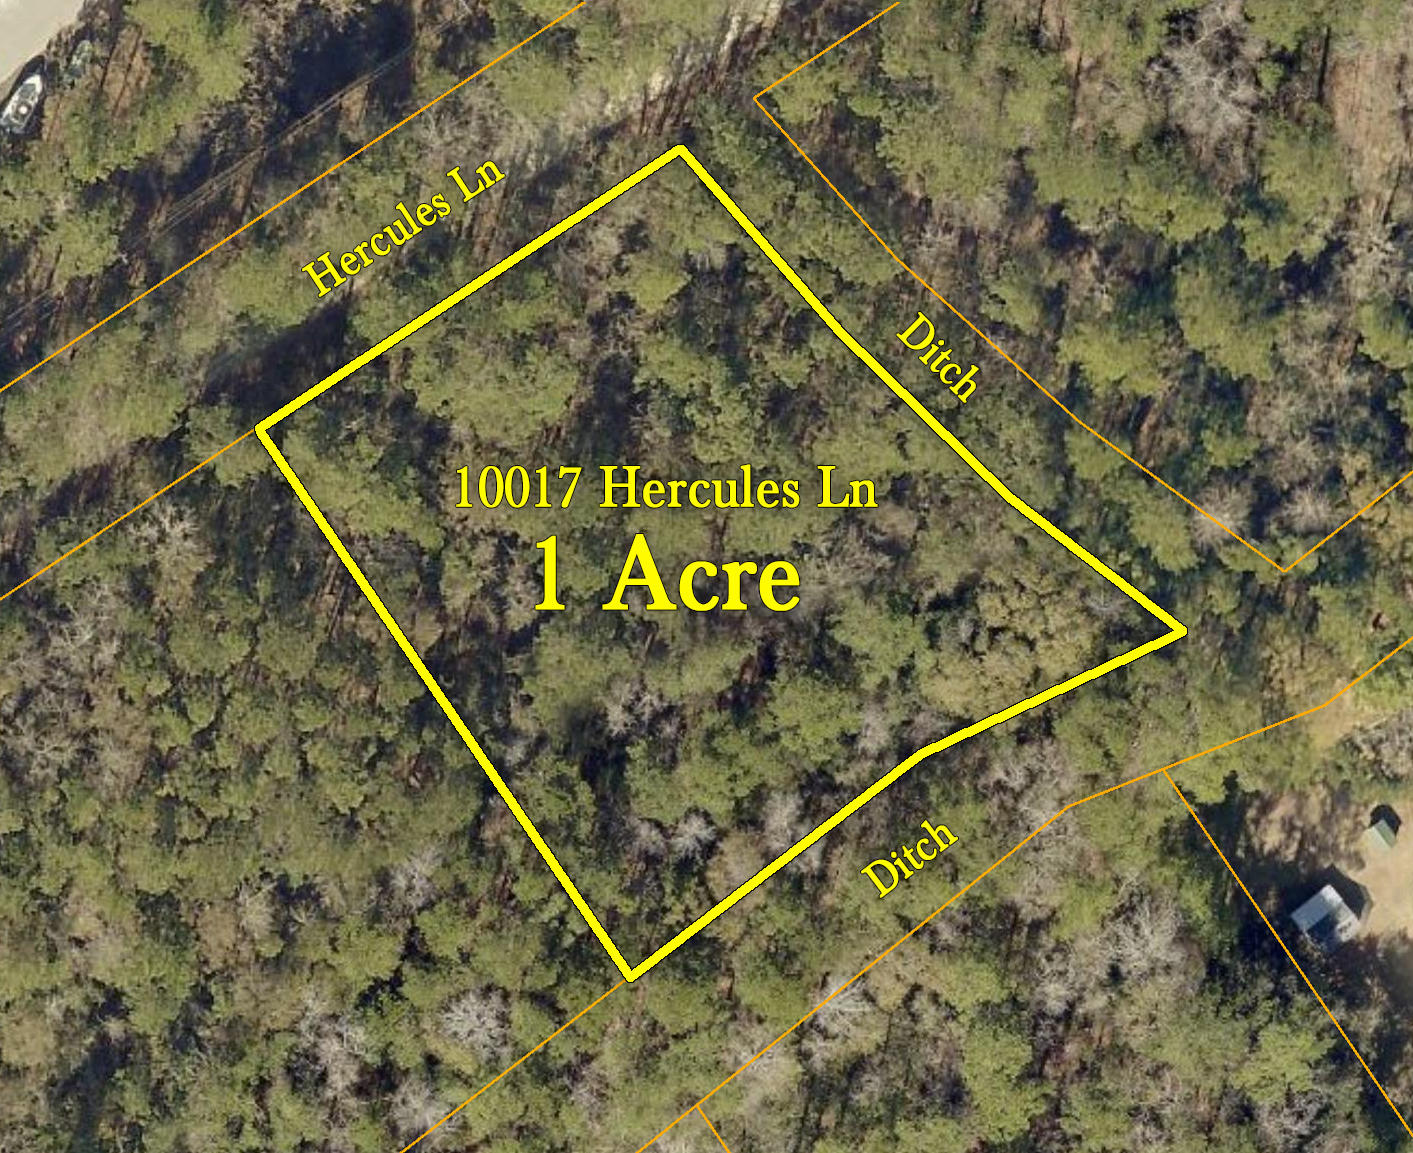 Freshly under-brushed 1-acre lot with brand new survey and 4-bedroom septic permit in hand.  Located in the quiet Silver Hill community of the Town of McClellanville just a few minutes to the shops and restaurants on Hwy 17 and the Historic District. Property also enjoys close access to the Francis Marion National Forest and the Cape Romain Wildlife Refuge via the town's boat landing. This property is also just a 1/2 mile to Cape Romain Environmental Education Charter School (CREECS) which serves grades 4K-8th. For those who don't want to climb stairs, this home is located in an AE 11 flood zone with a ground elevation of approximately 11 feet, so your home may be build on a low crawlspace or even a raised slab rather than the raised pier construction. No mobile homes allowed.